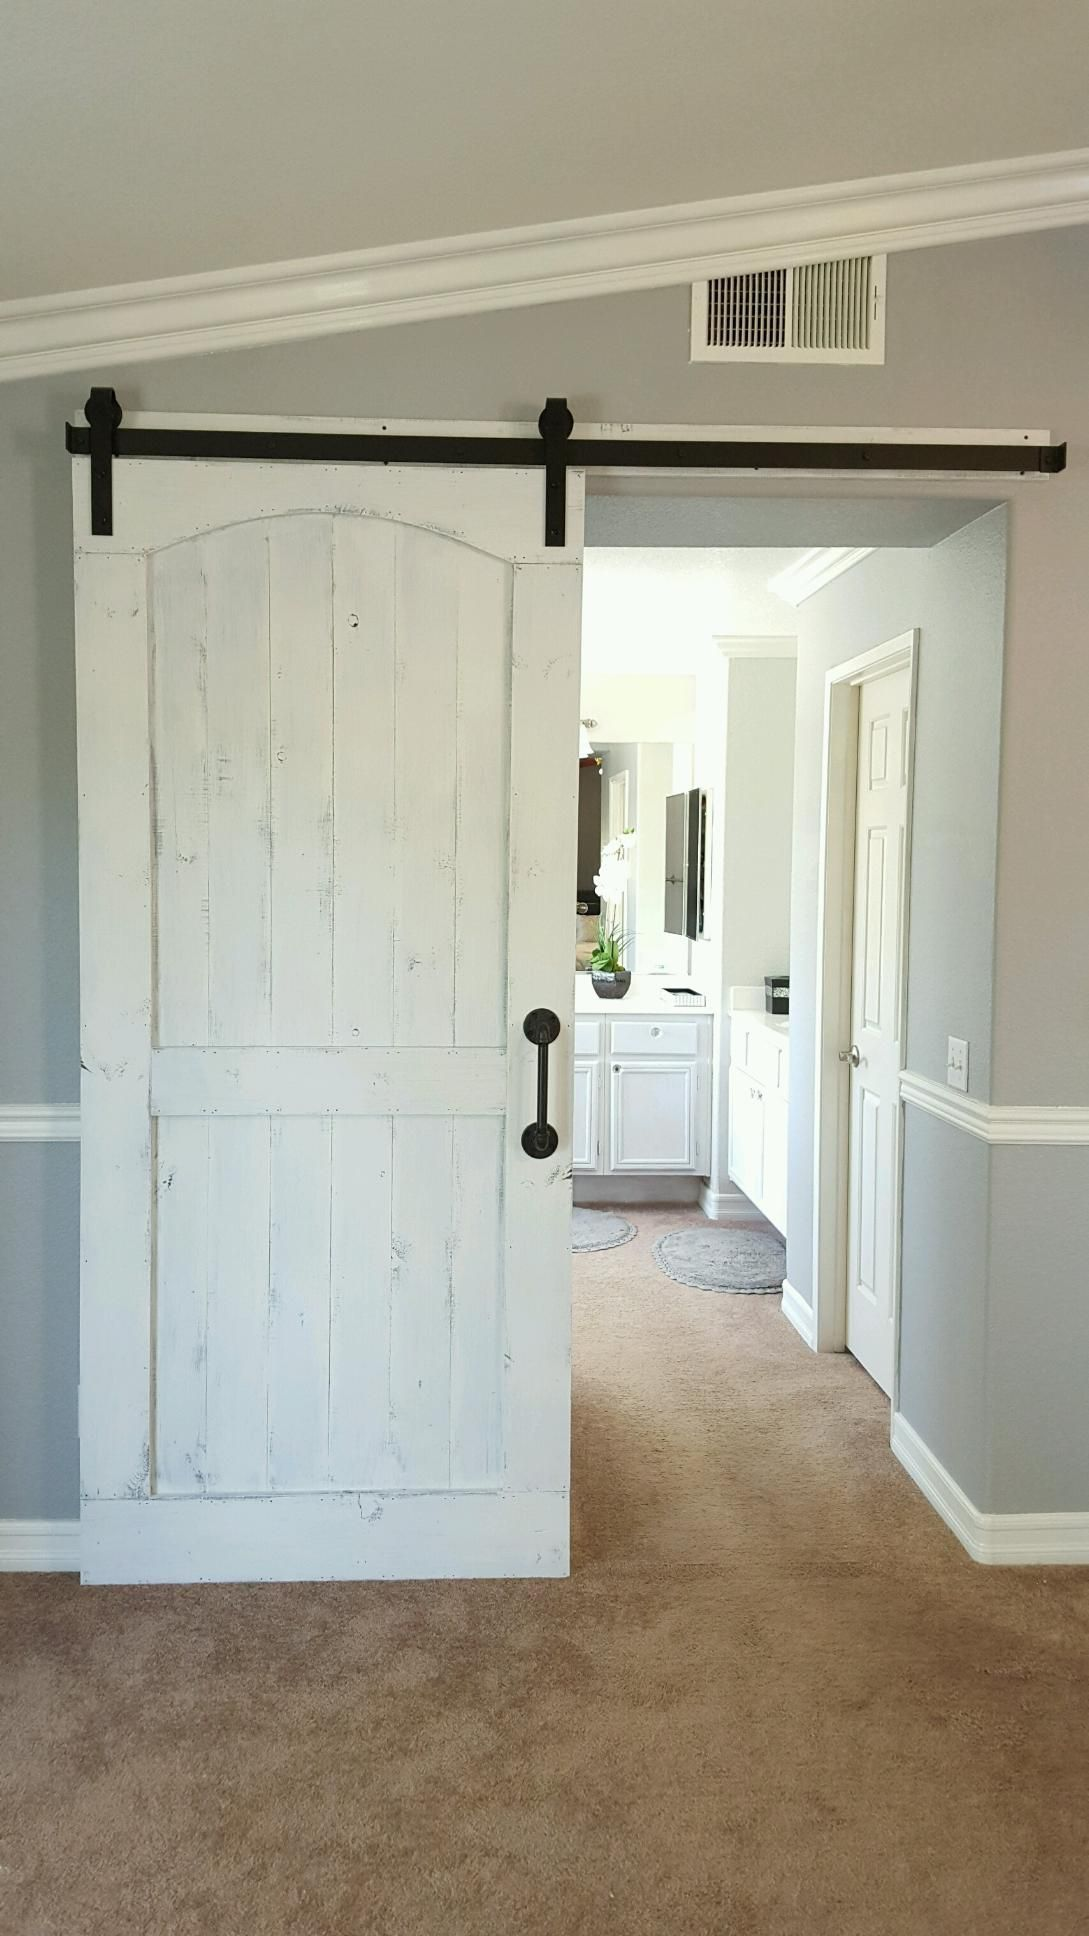 Distressed White Barn Door With Hardware For A Master Bedroom Bathroom Houseremodelin Distressed White Bedroom Furniture Guest Bedroom Remodel Remodel Bedroom